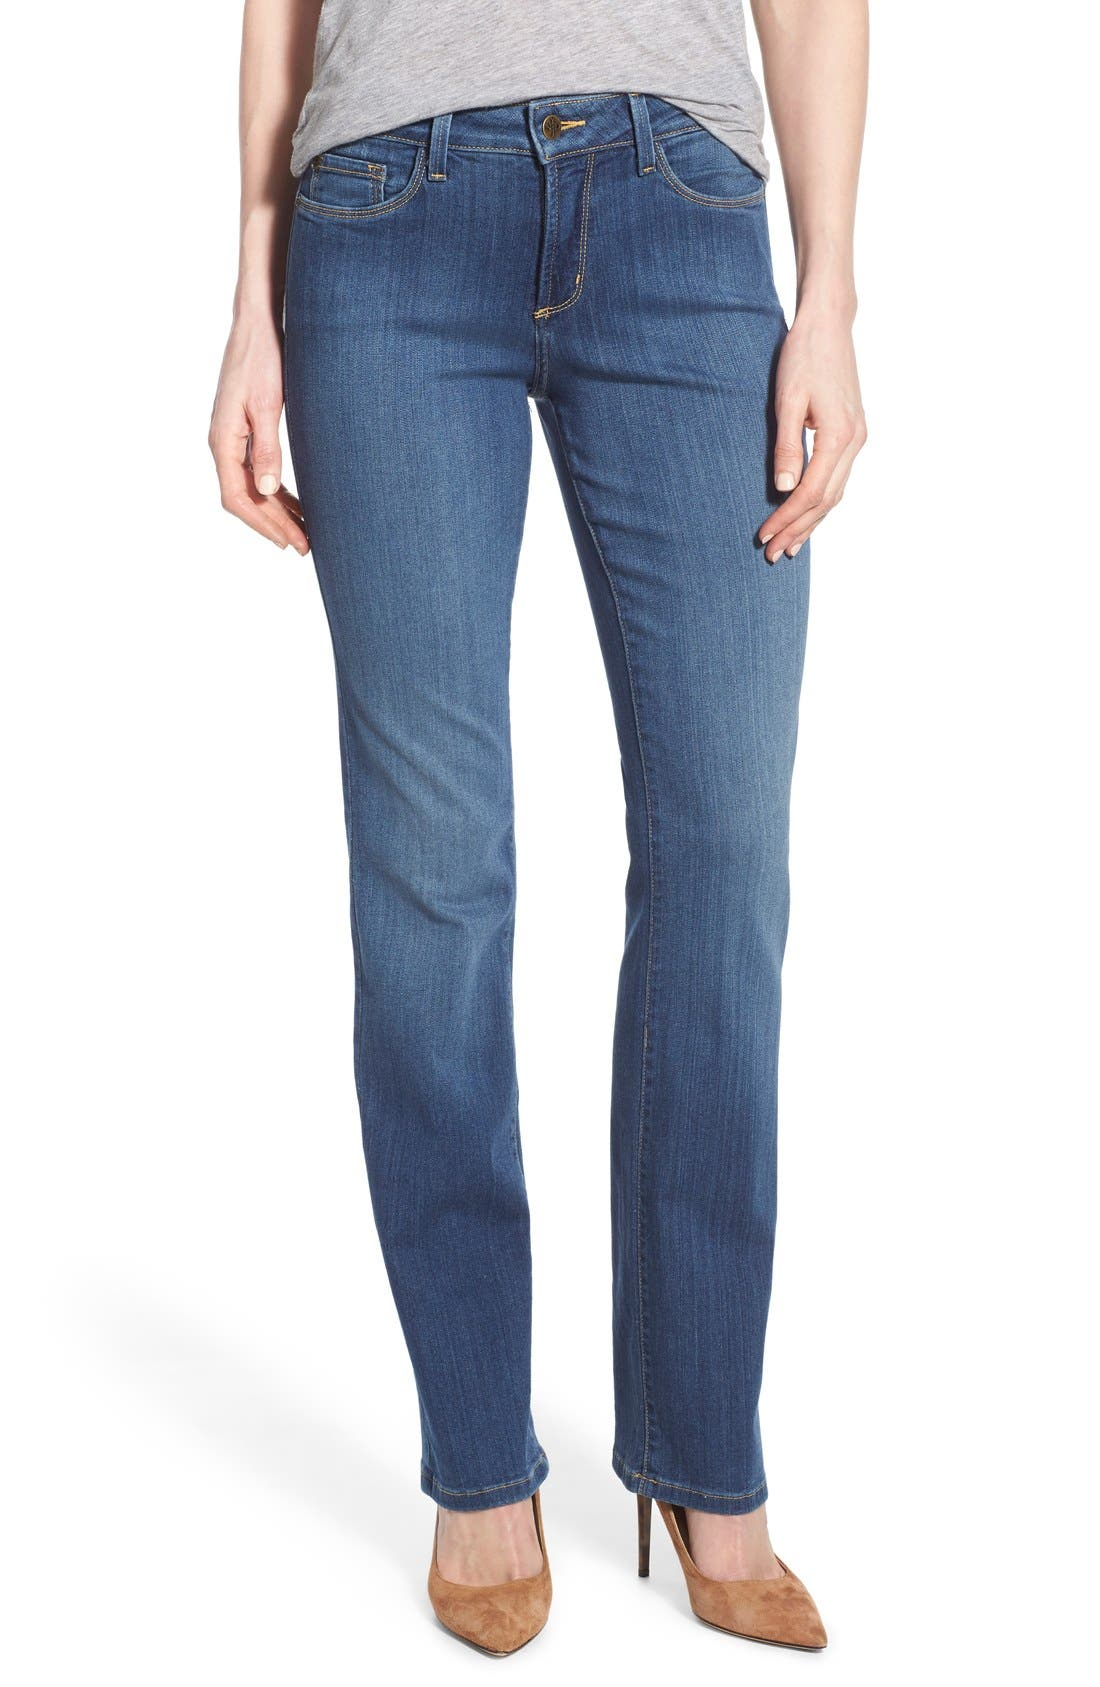 'Marilyn' Stretch Straight Leg Jeans,                             Main thumbnail 1, color,                             425